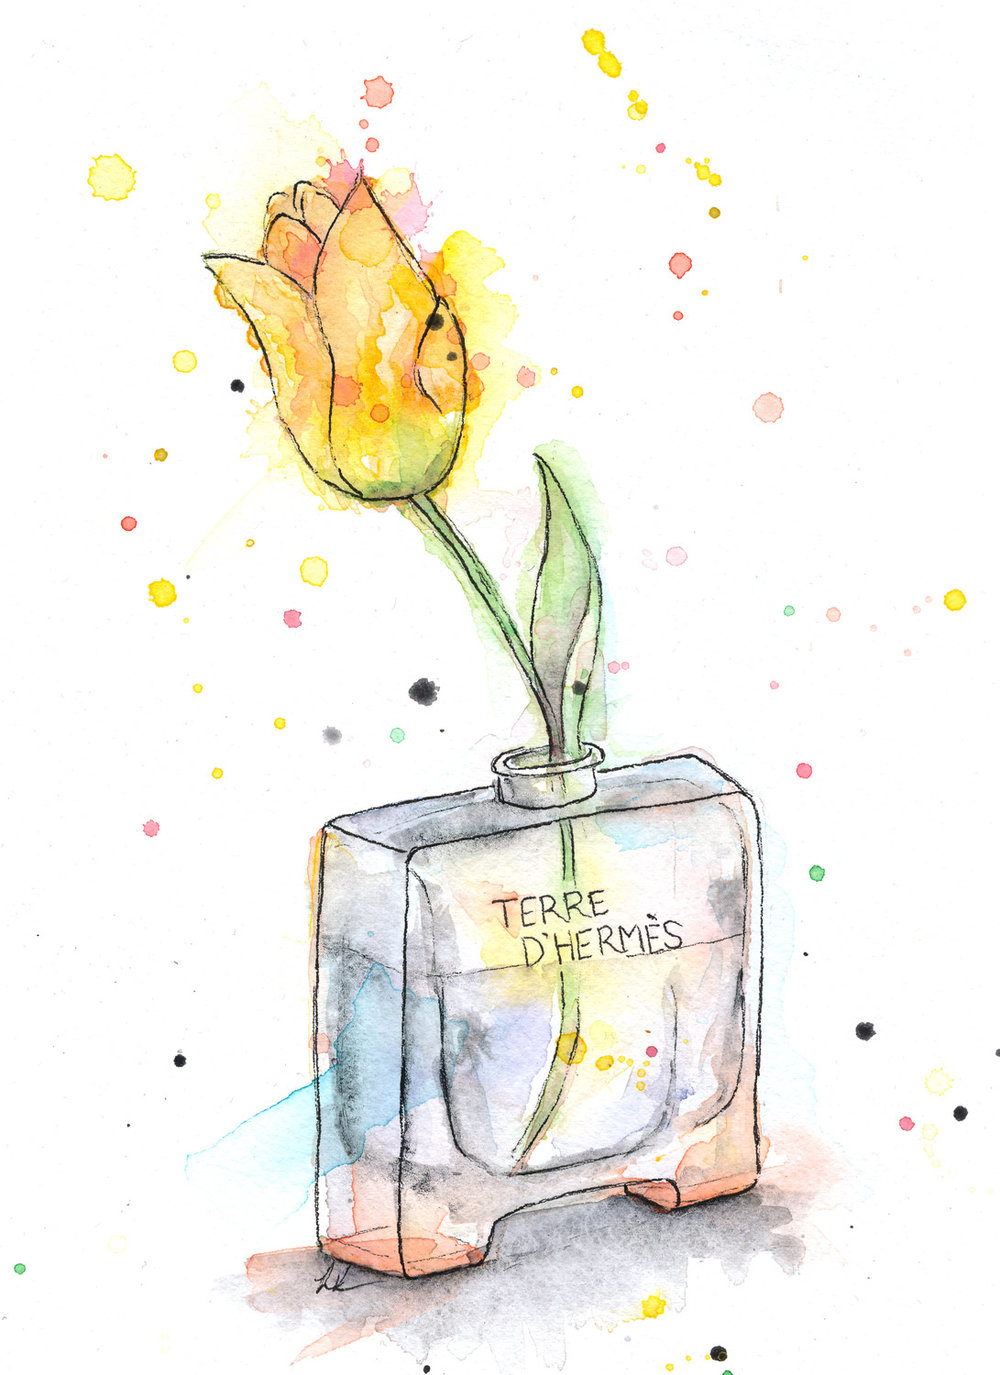 Benjamin-Edward-Terre-Hermes-Yellow-Tulip-Perfume-watercolour-illustration.jpg